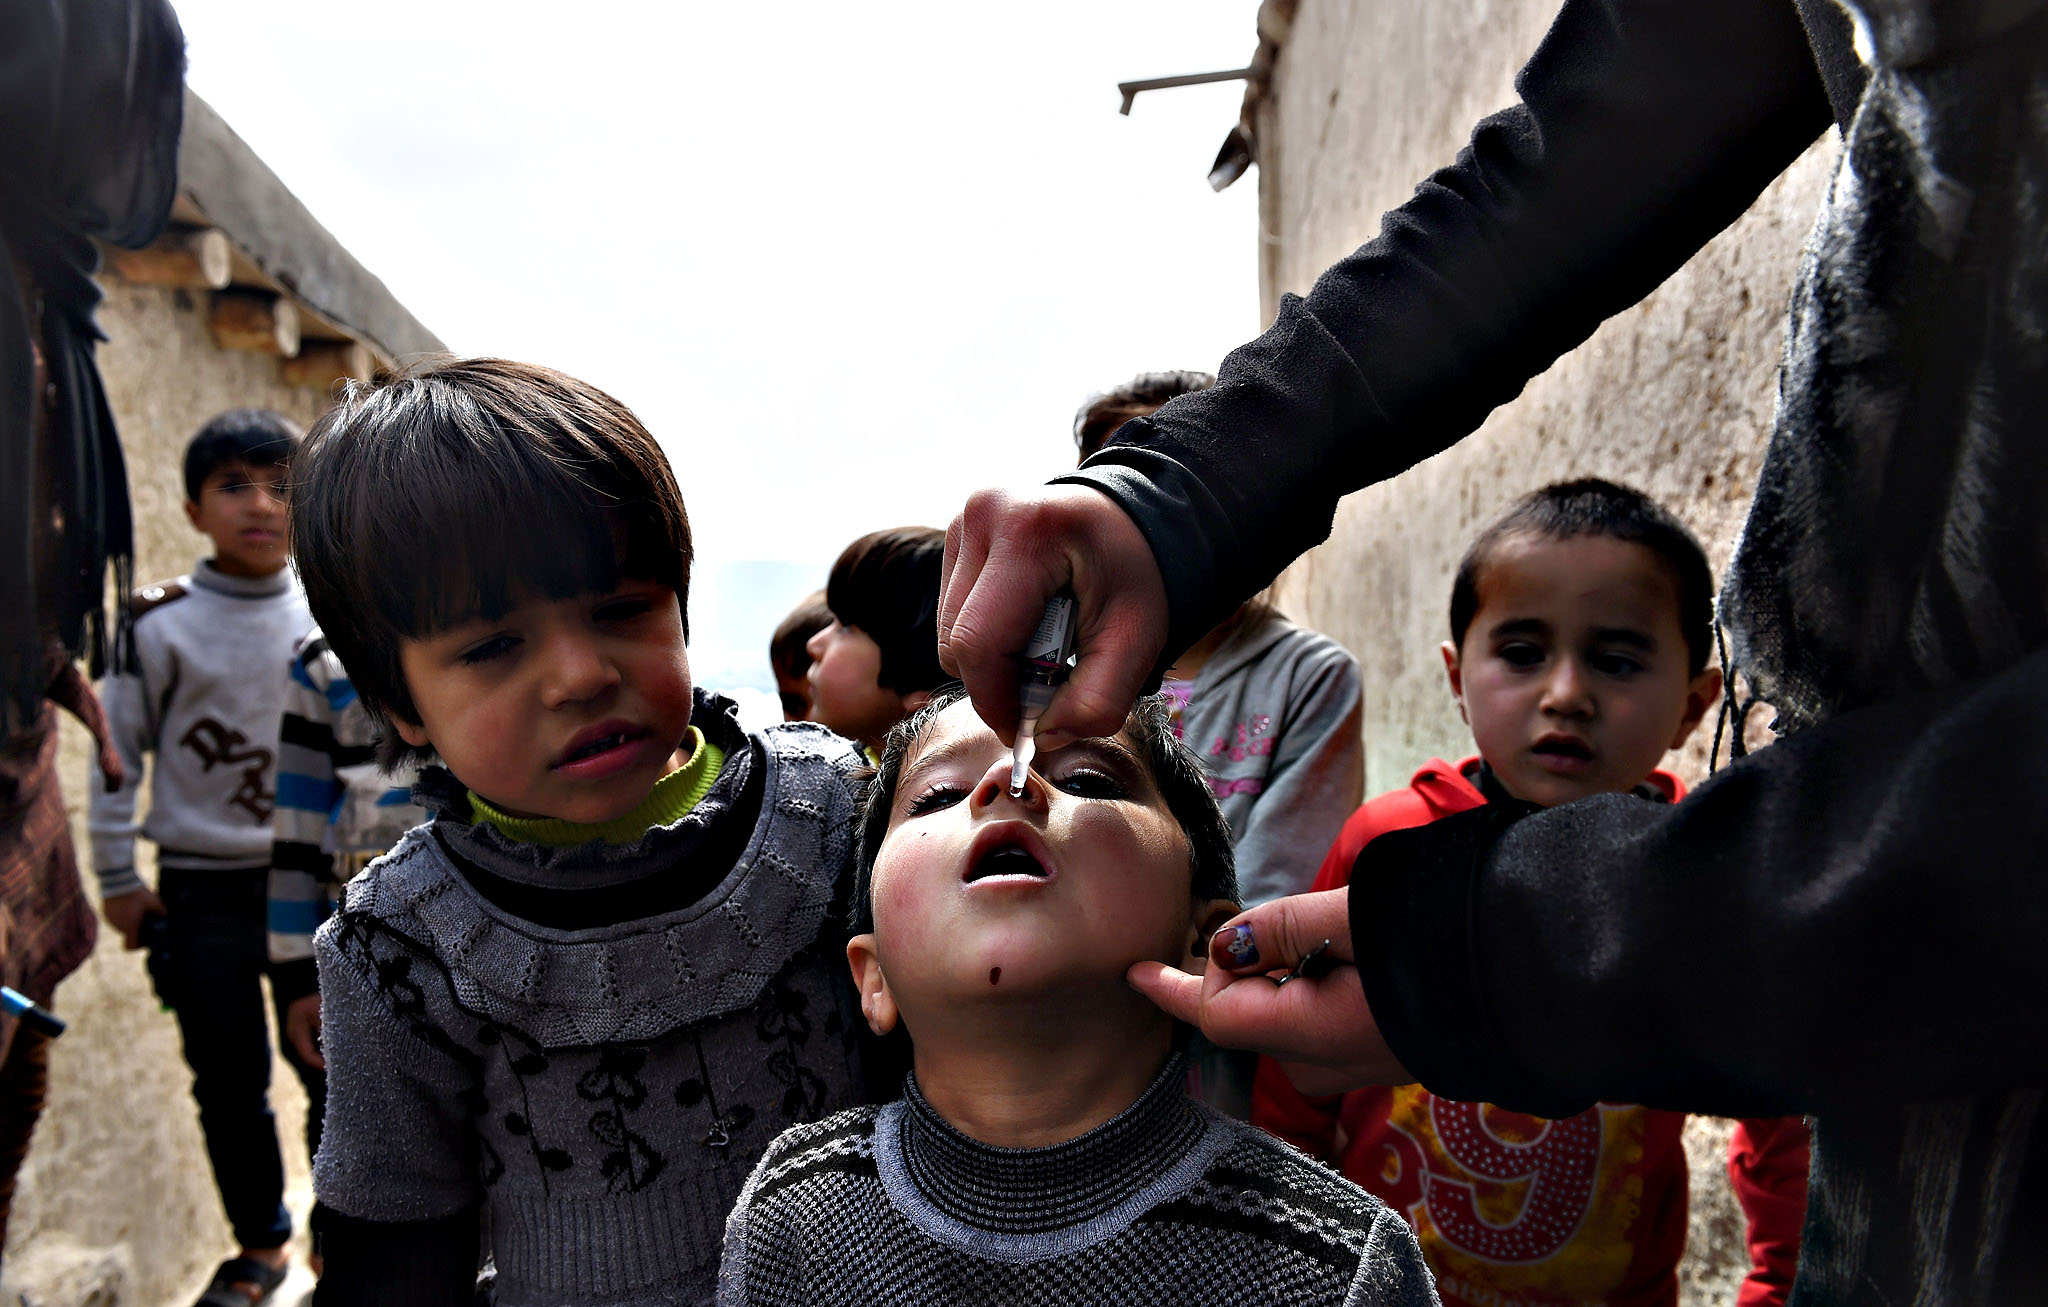 An Afghan health worker administers polio vaccine drops to a child on the second day of a vaccination campaign in Kabul on March 16, 2015. Nearly nine million children throughout Afghanistan will be immunized during a three-day national polio immunization drive launched on March 15.The immunization campaign comes shortly after Afghanistan reported its first case of polio virus for 2015, in Helmand, in the Southern Region. Afghanistan and Pakistan are the only two countries in the world to have reported cases of the crippling polio virus in the past eight months and it is increasingly likely that these are the last two countries on Earth with active polio transmission